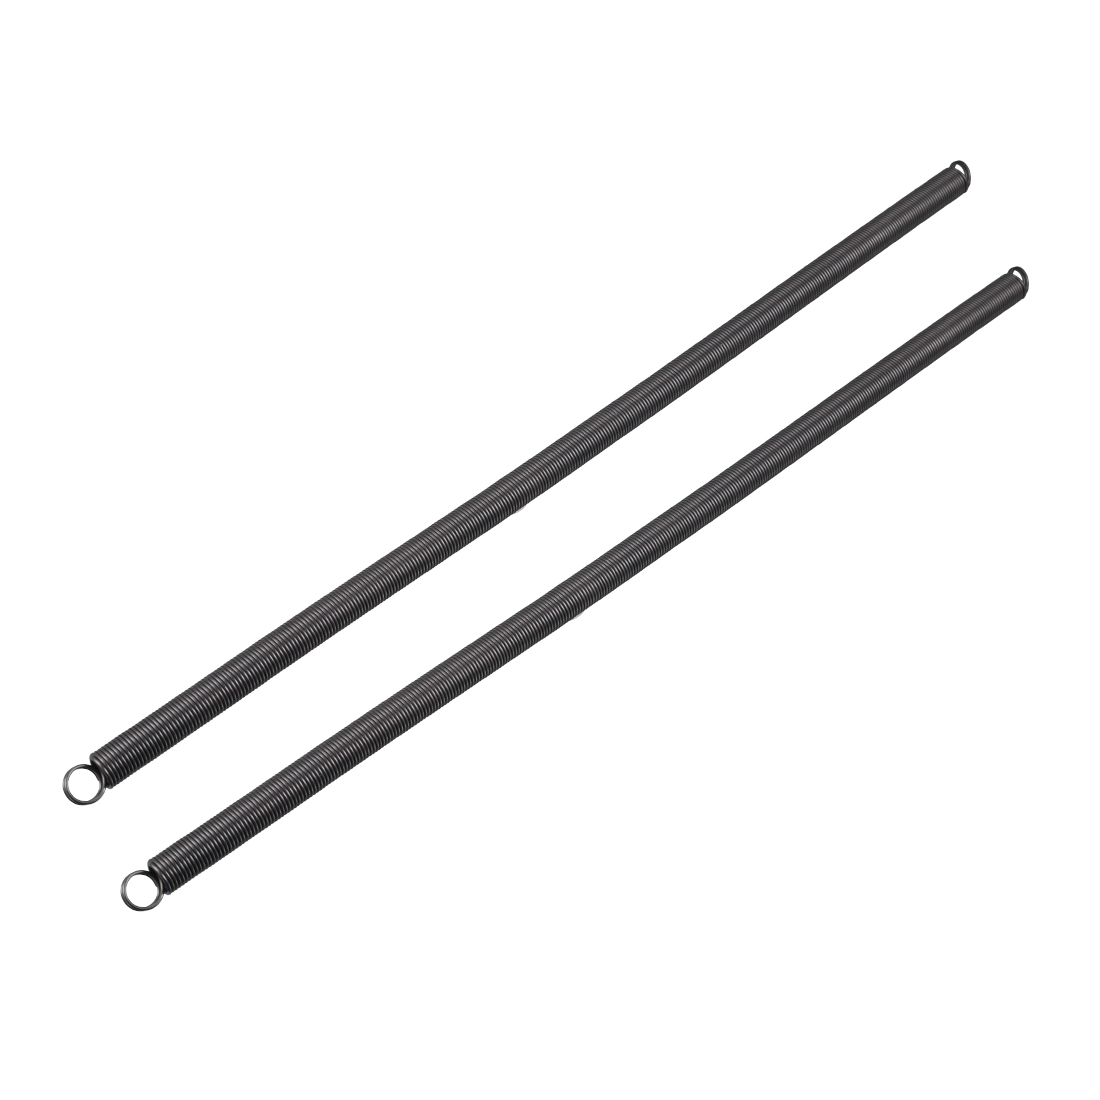 0.9mmx9mmx300mm Spring Steel Extension Tension Springs Black 2pcs